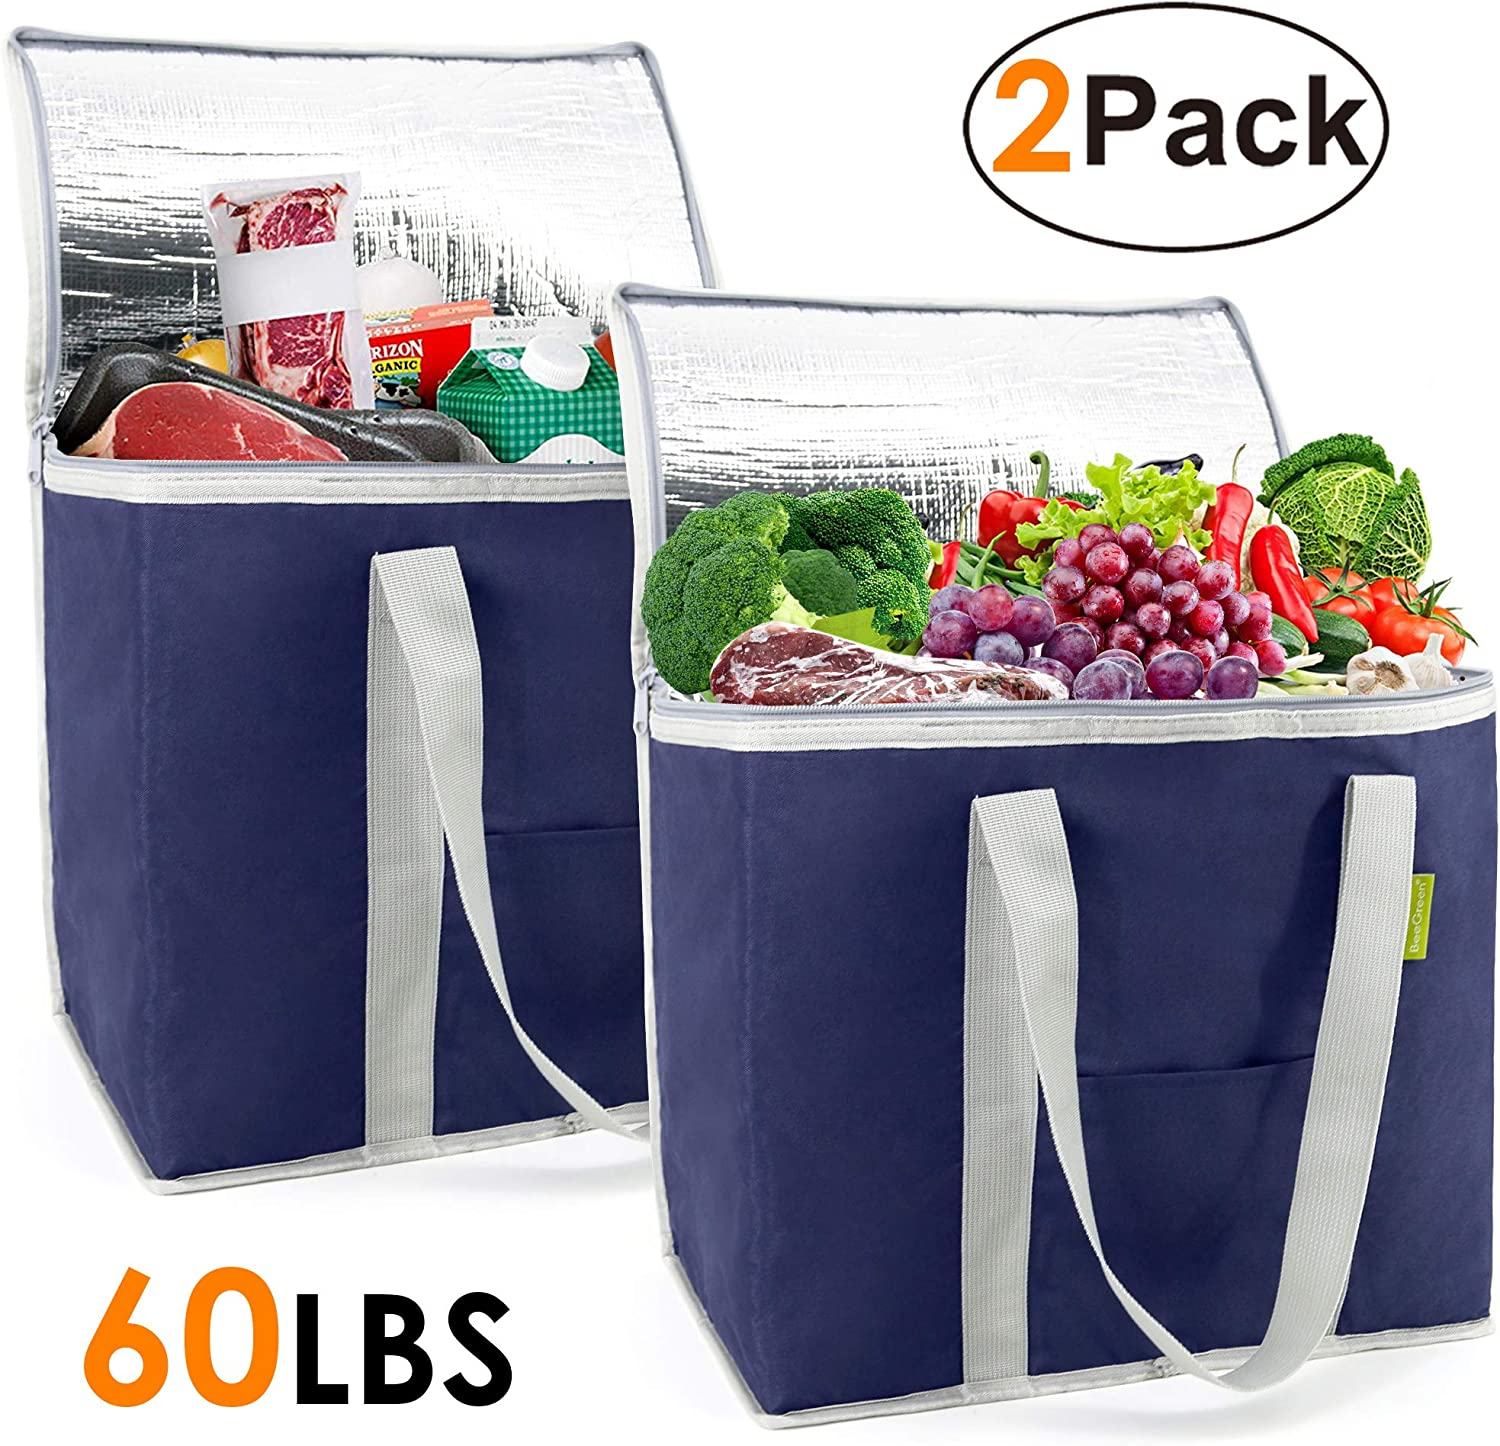 Insulated-Grocery-Bag-Thermal-Cooler-Shopping-Tote 2 Pack X-Large 60LBS Reusable and Durable with Zipper Top Collapsible for Hot Cold Frozen Food Transport Blue